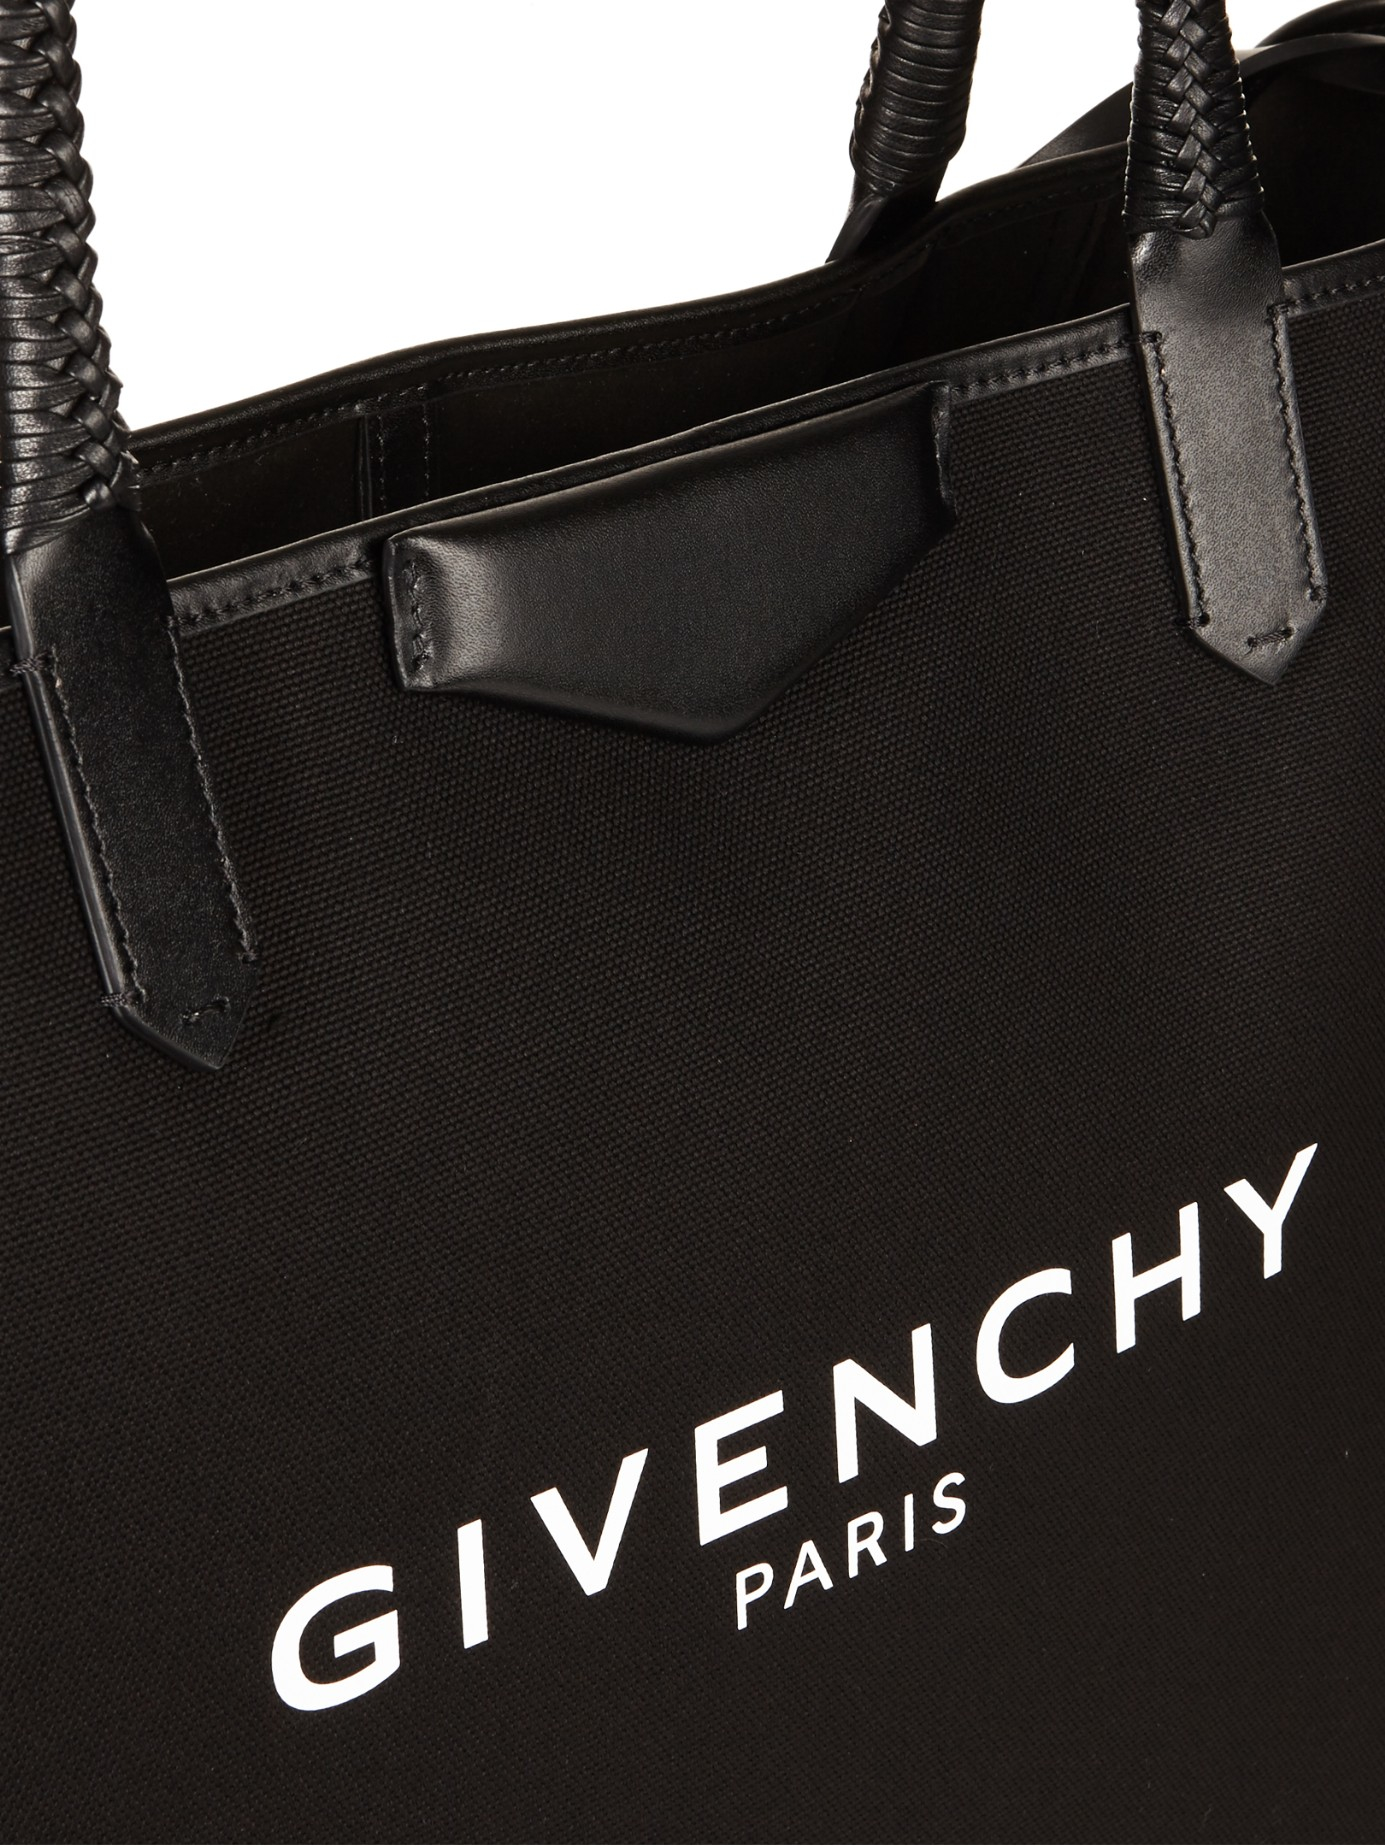 46d097acd2 Givenchy Antigona Large Canvas Tote in Black - Lyst